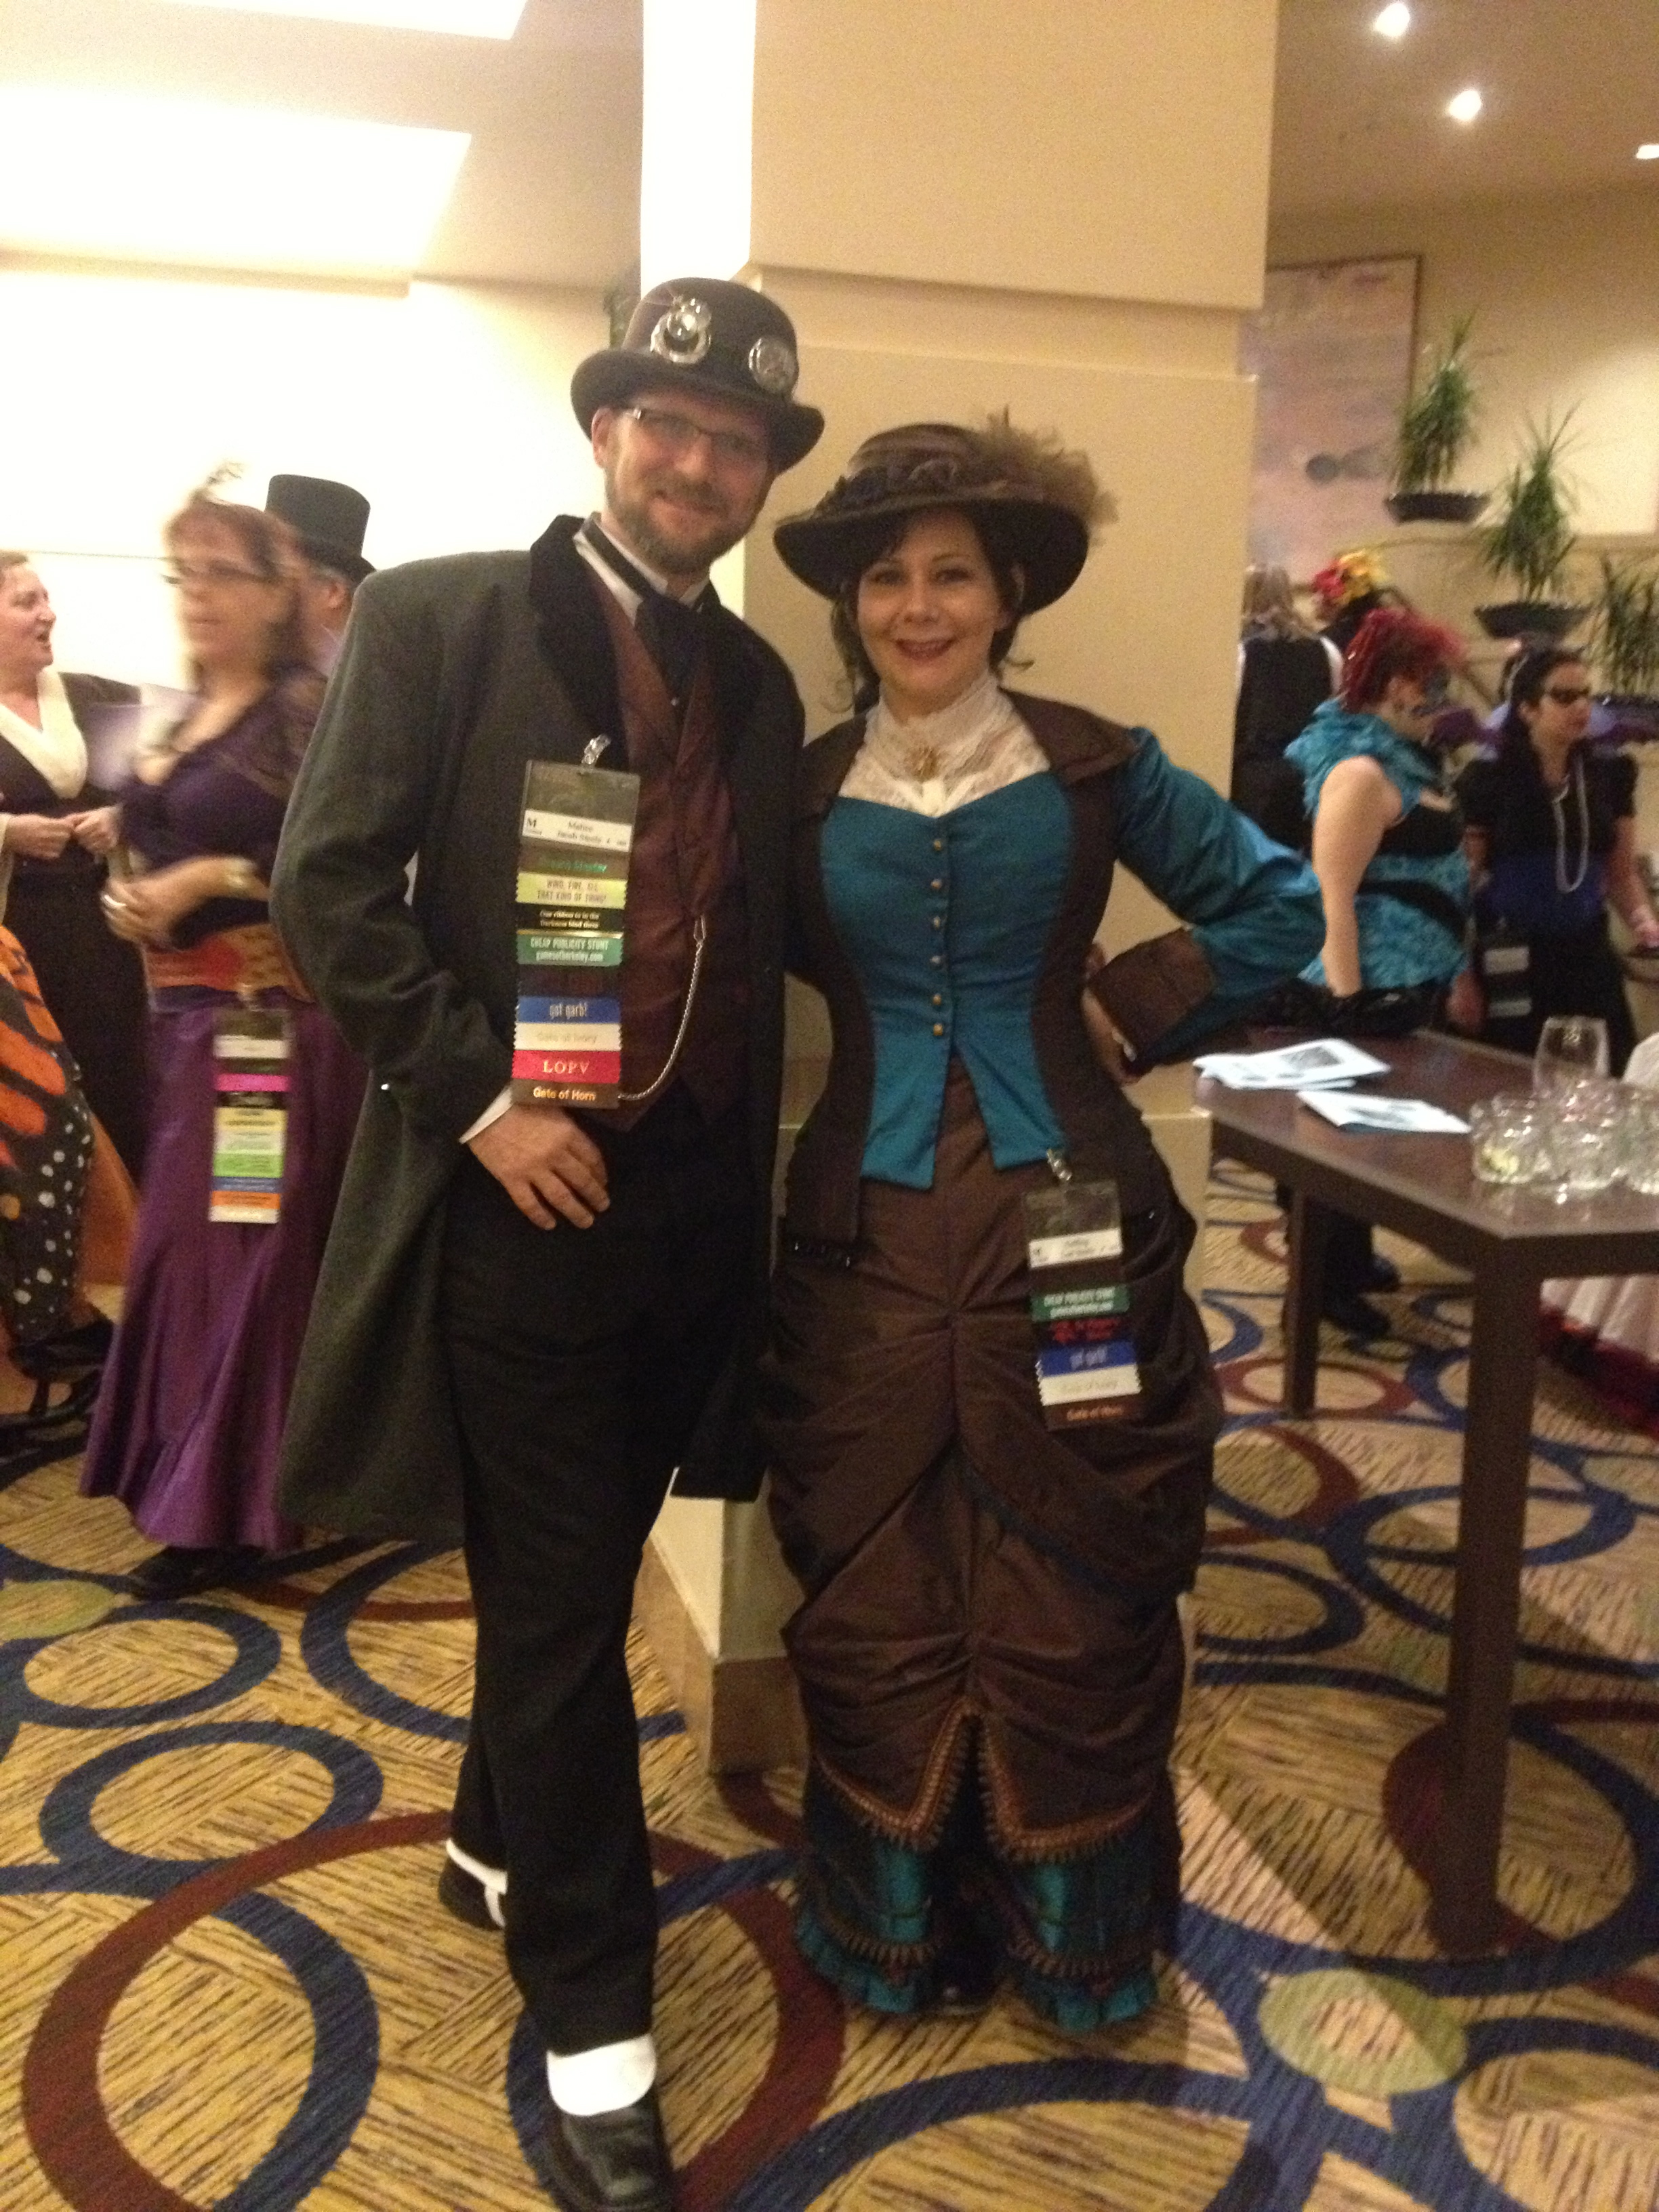 Steampunk woman and man in full costume